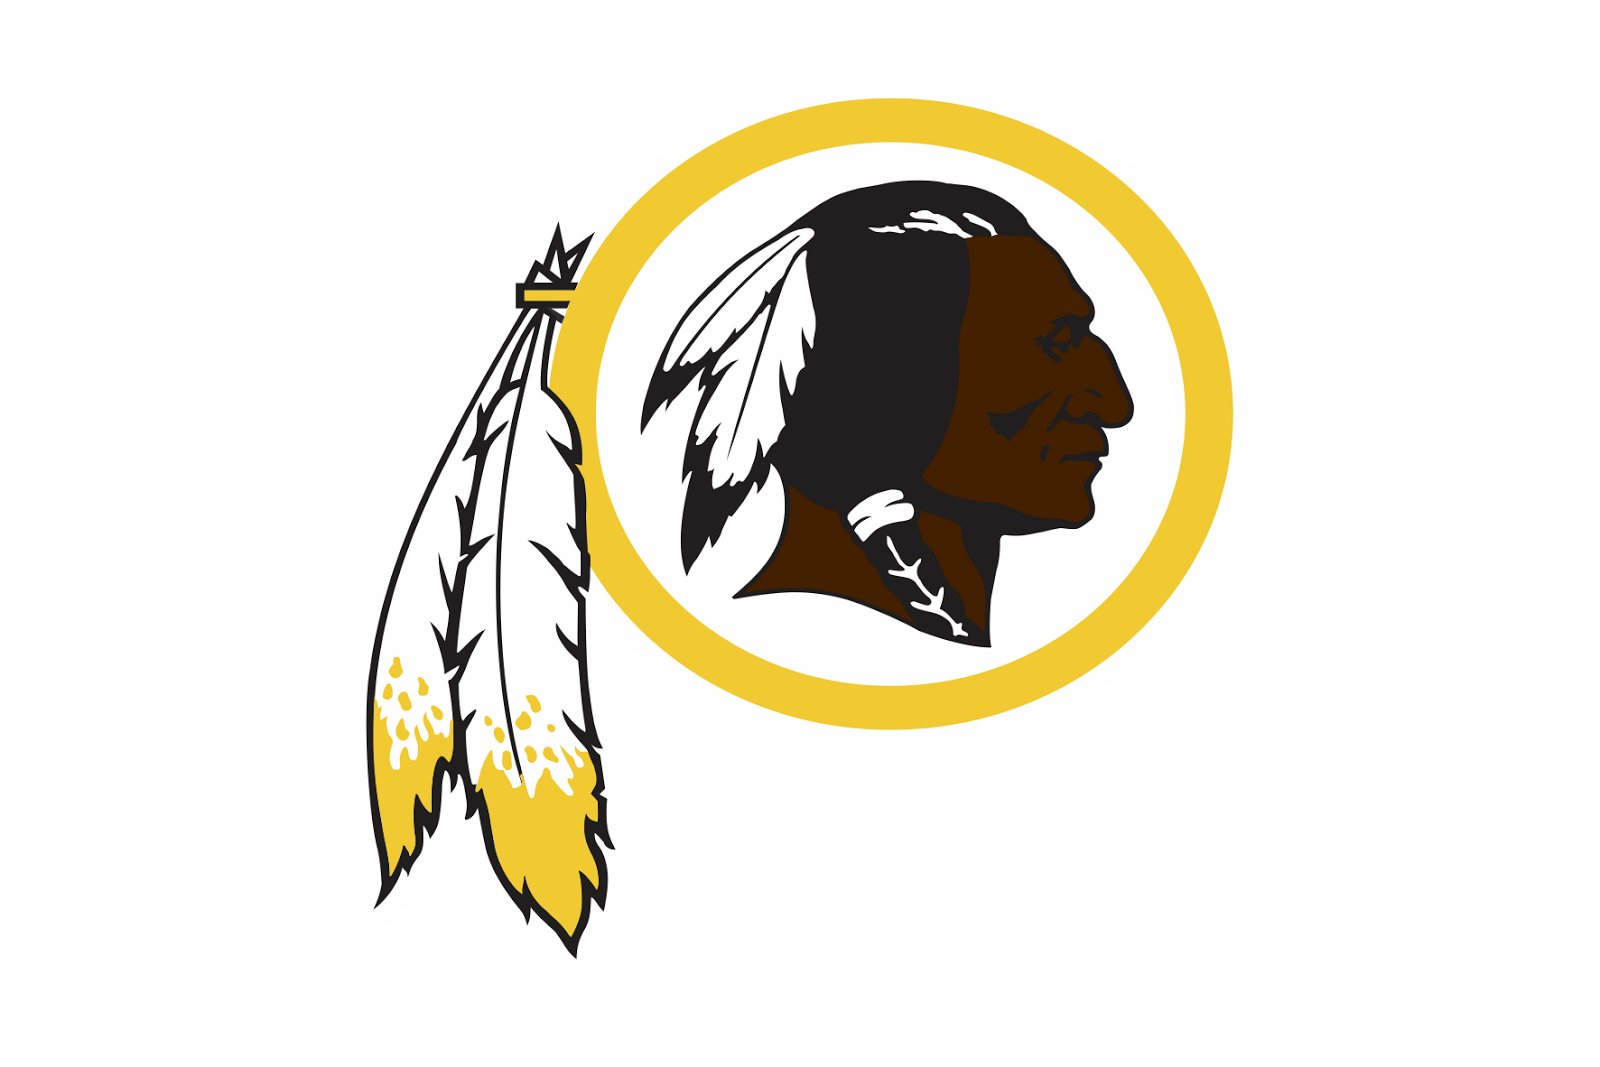 Washington Redskins Submited Images